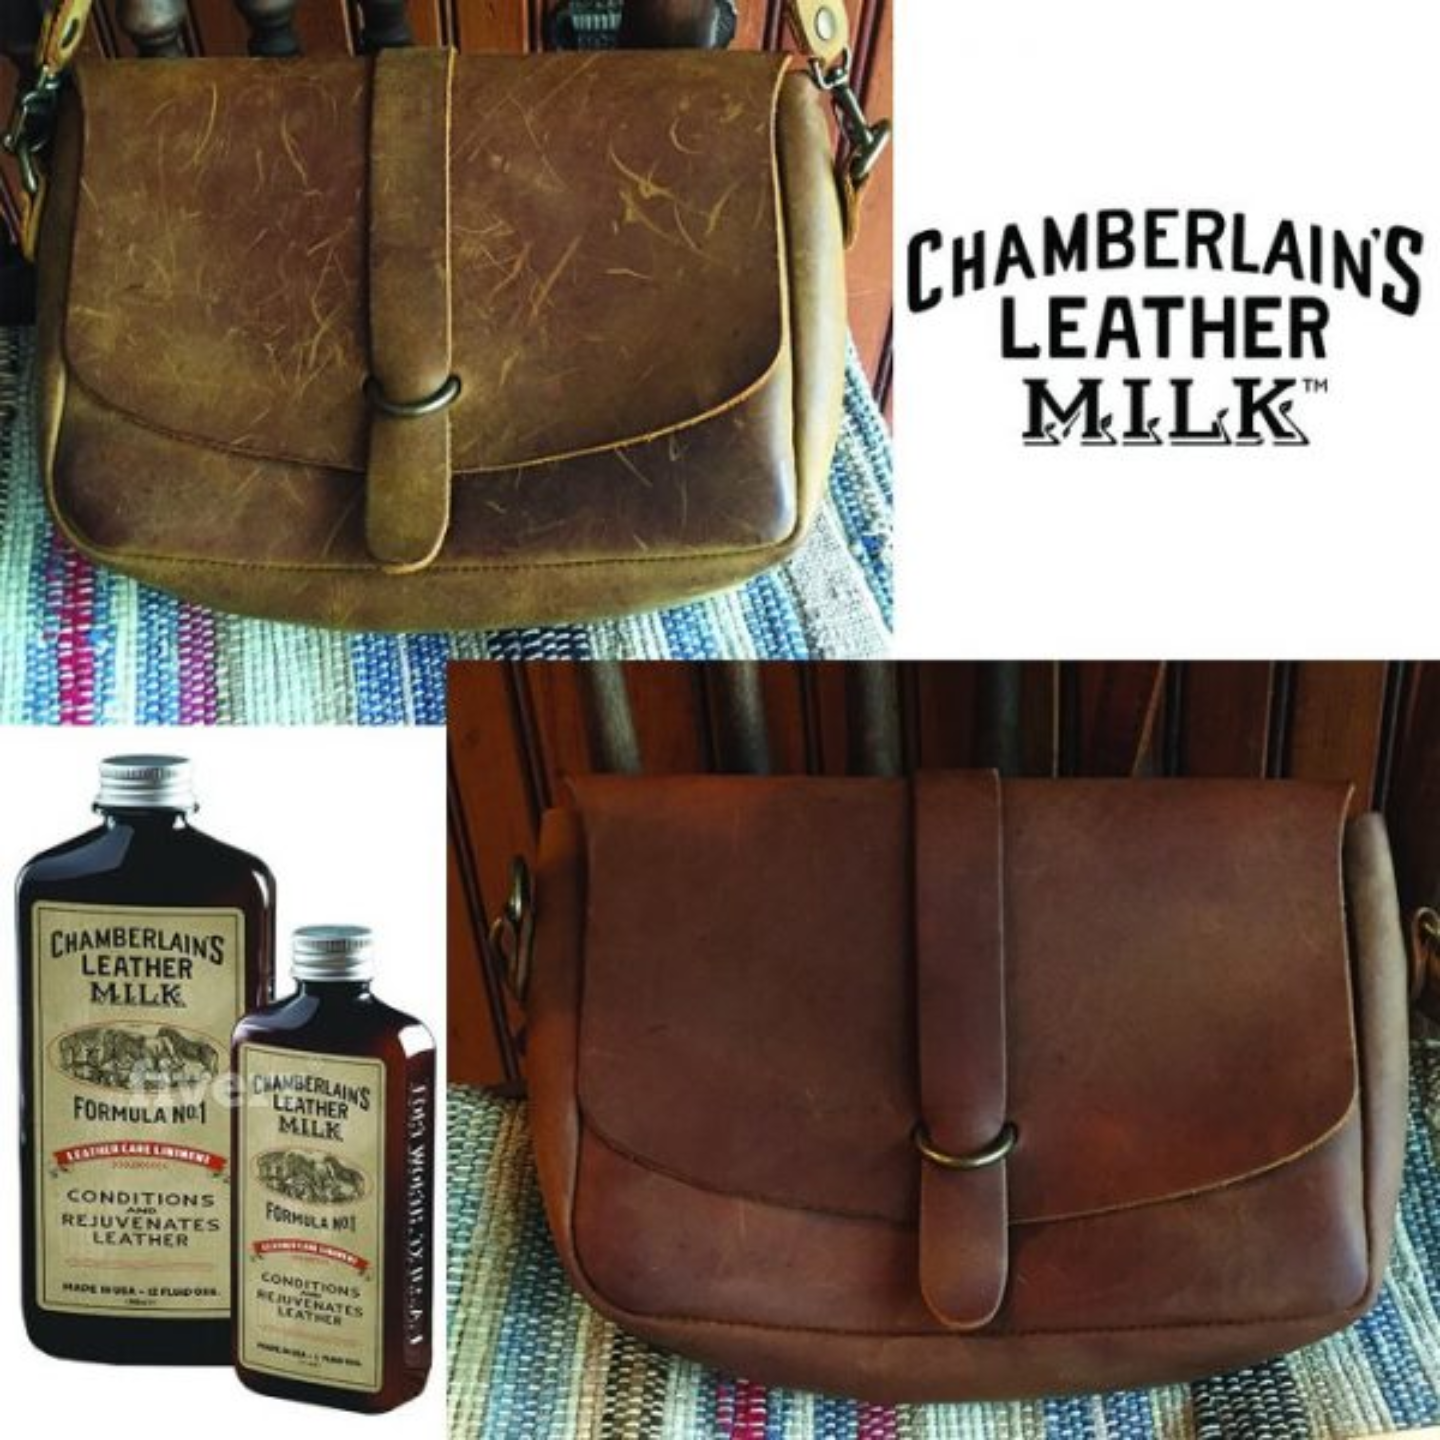 CHAMBERLAINS LEATHER MILK - LEATHER MILK CLEAN + CONDITION STOCKING STUFFER SET NO. 1 & NO. 2